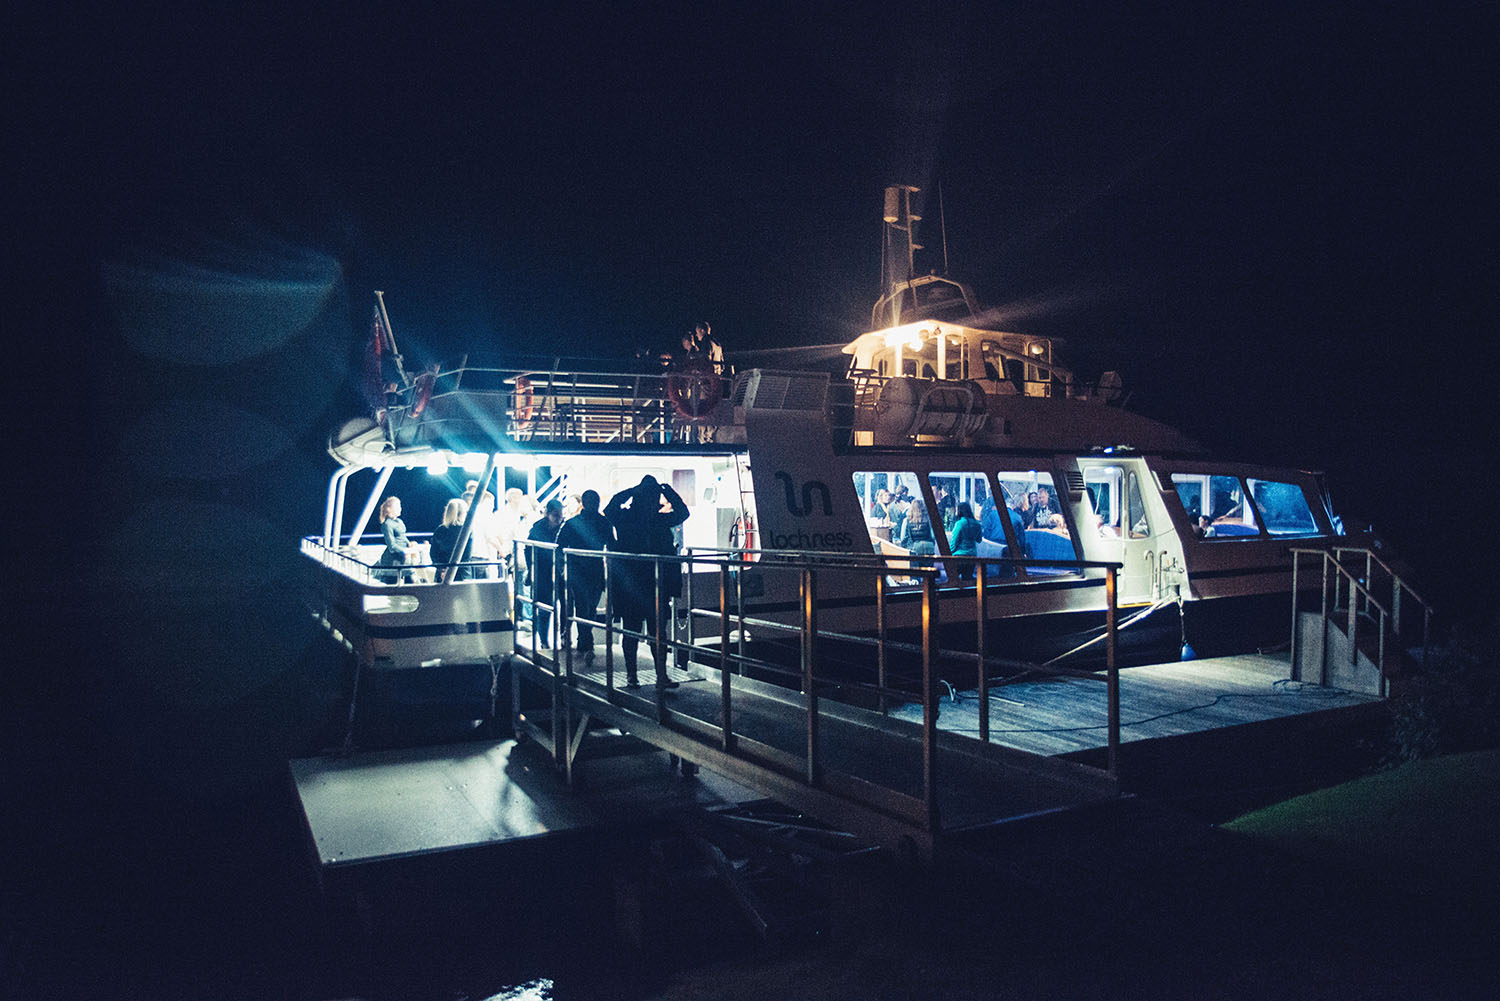 Boat in the dark - Loch Ness by Jacobite